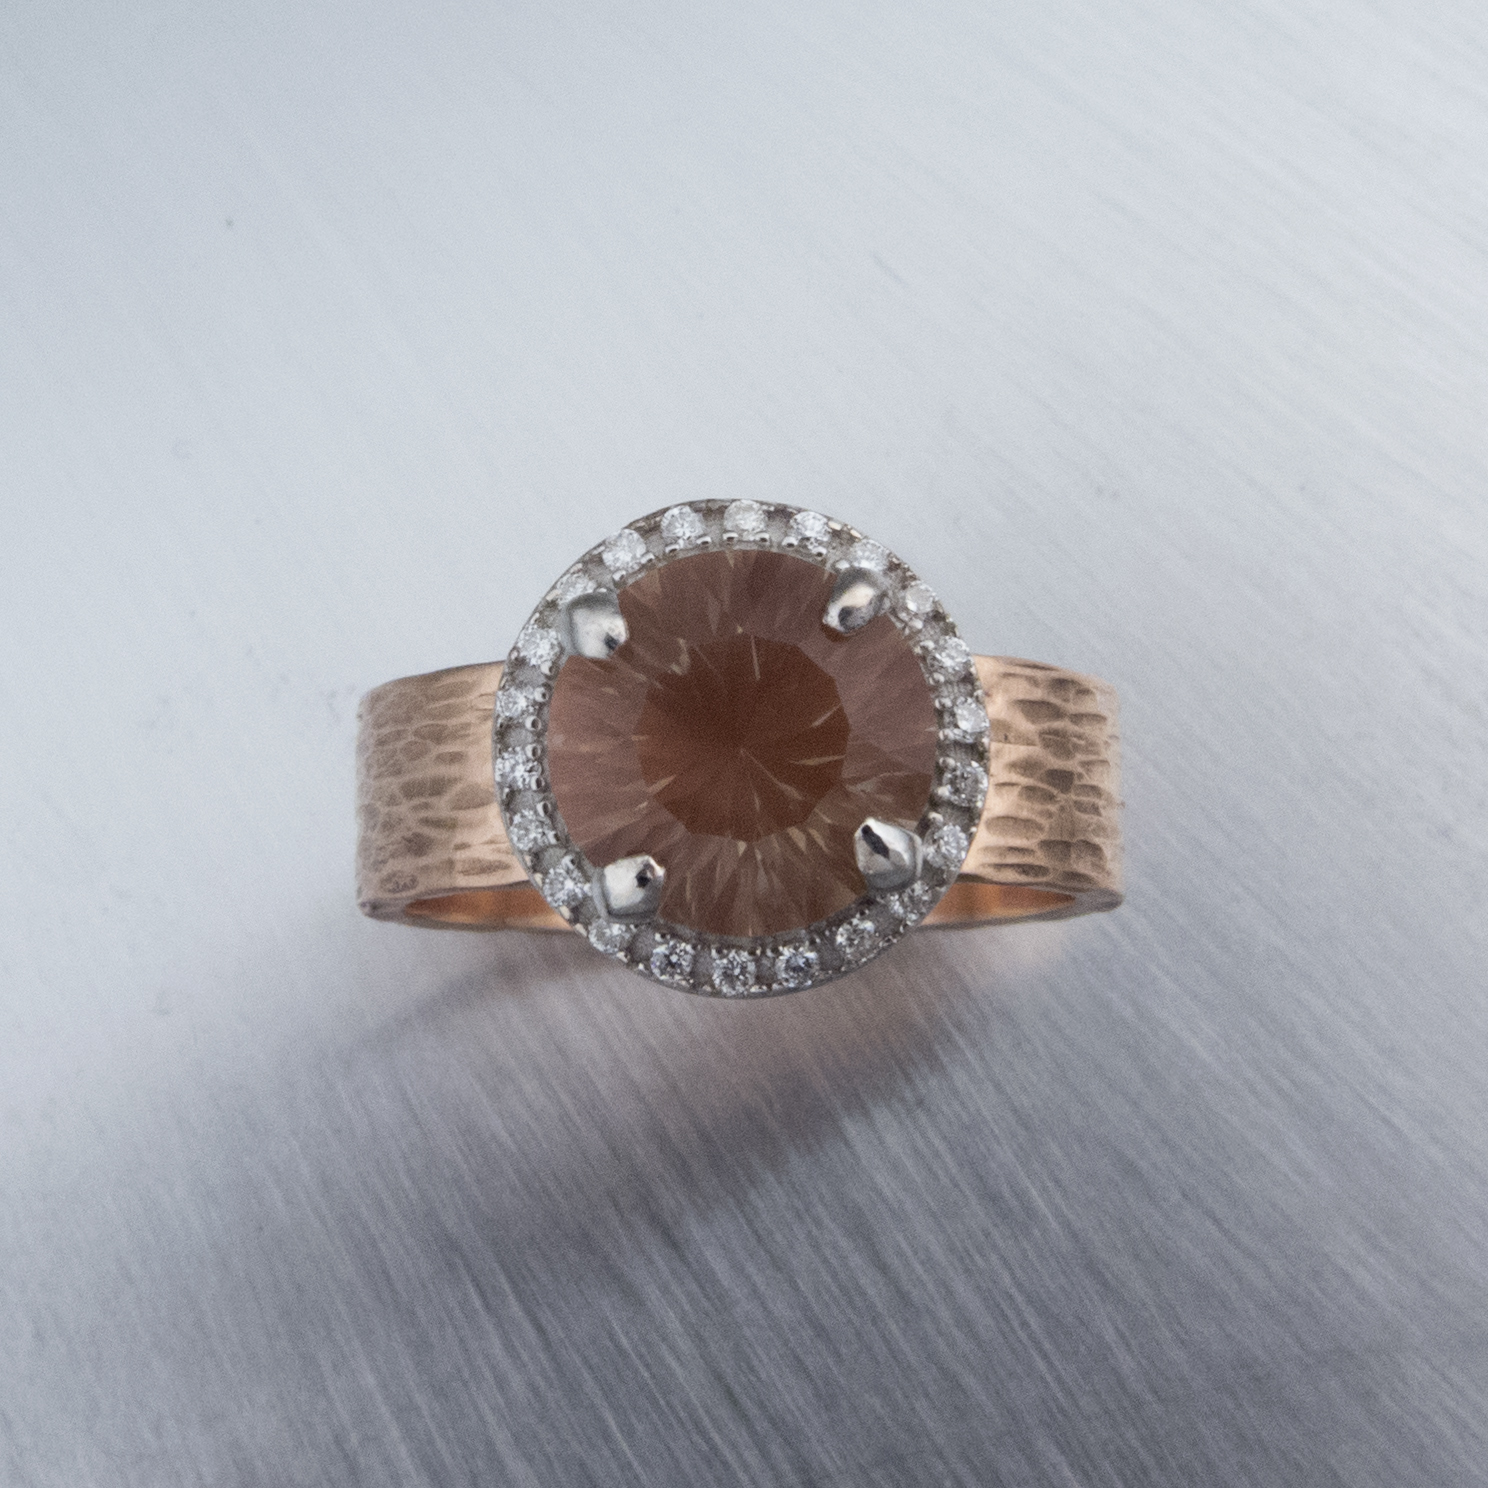 stone sunstone pinterest oregon pin champagne ring sun rings engagement